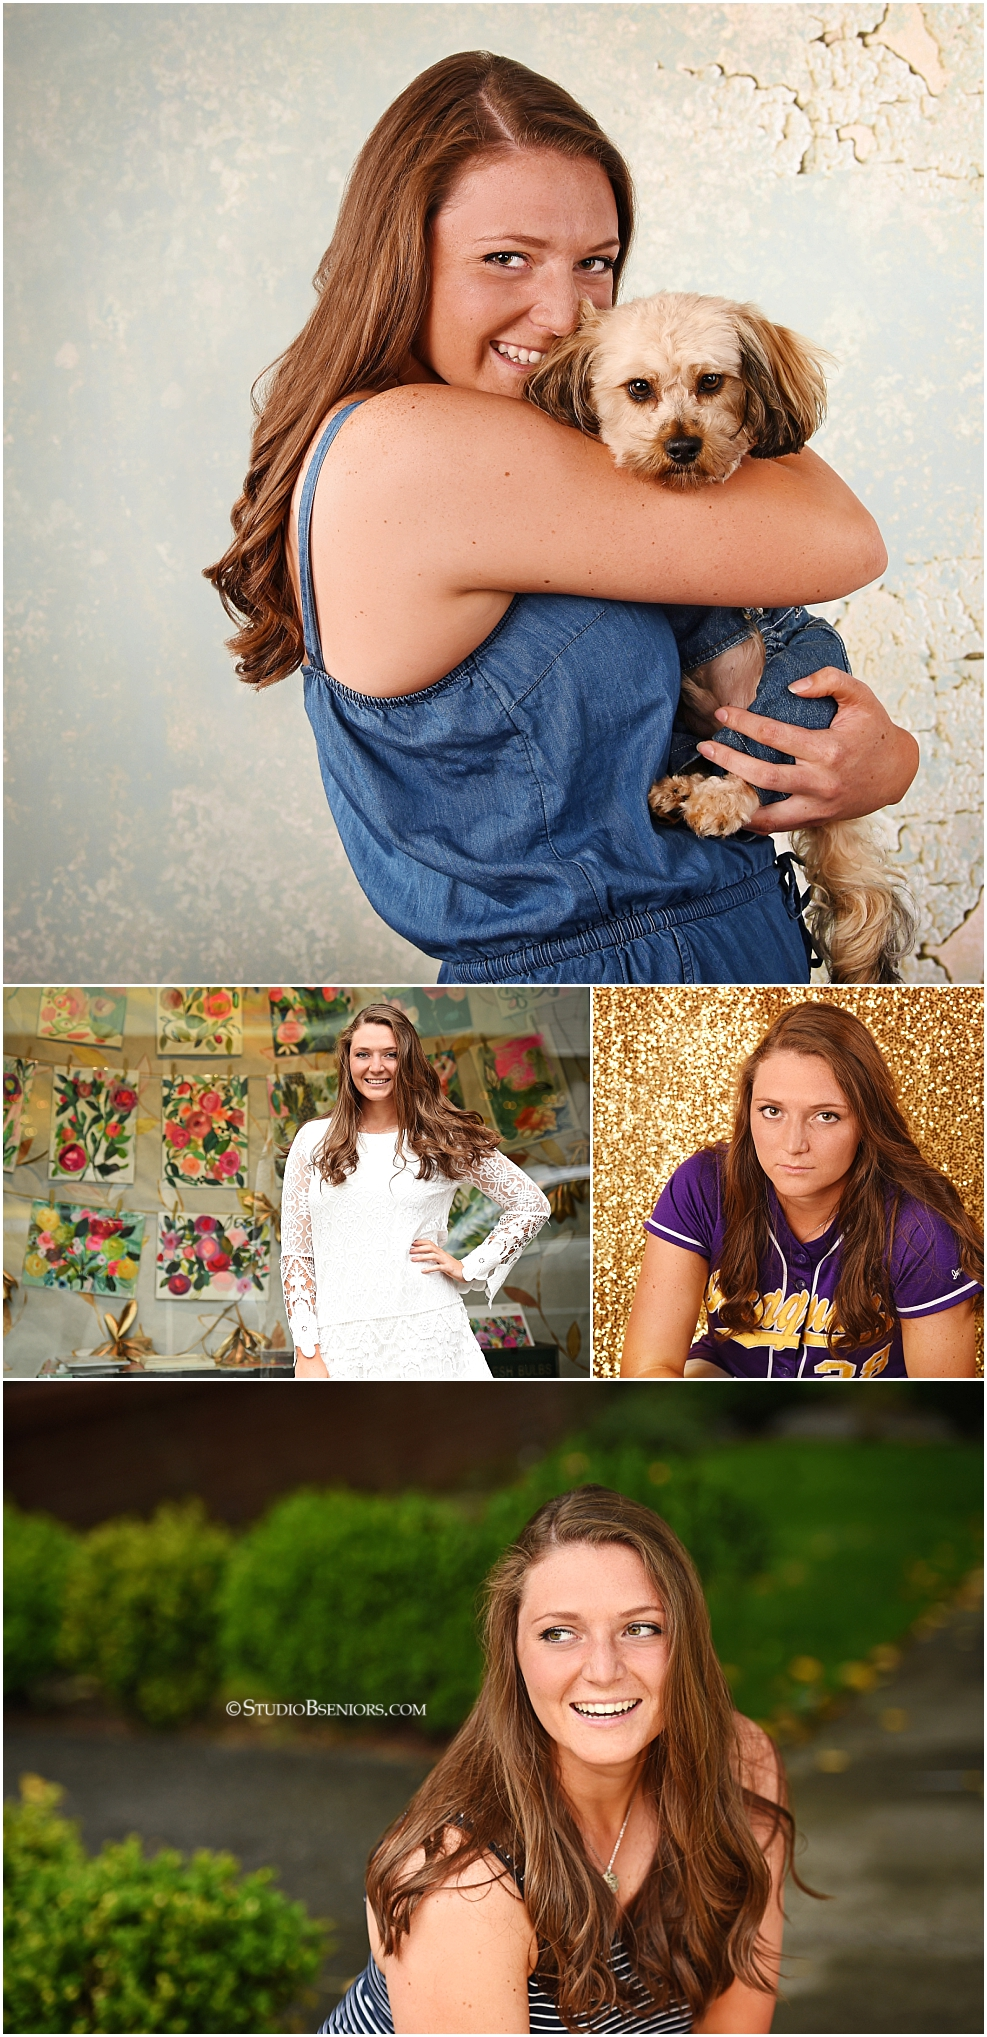 Morgan Bevell senior pictures collage with puppy in matching jean overalls